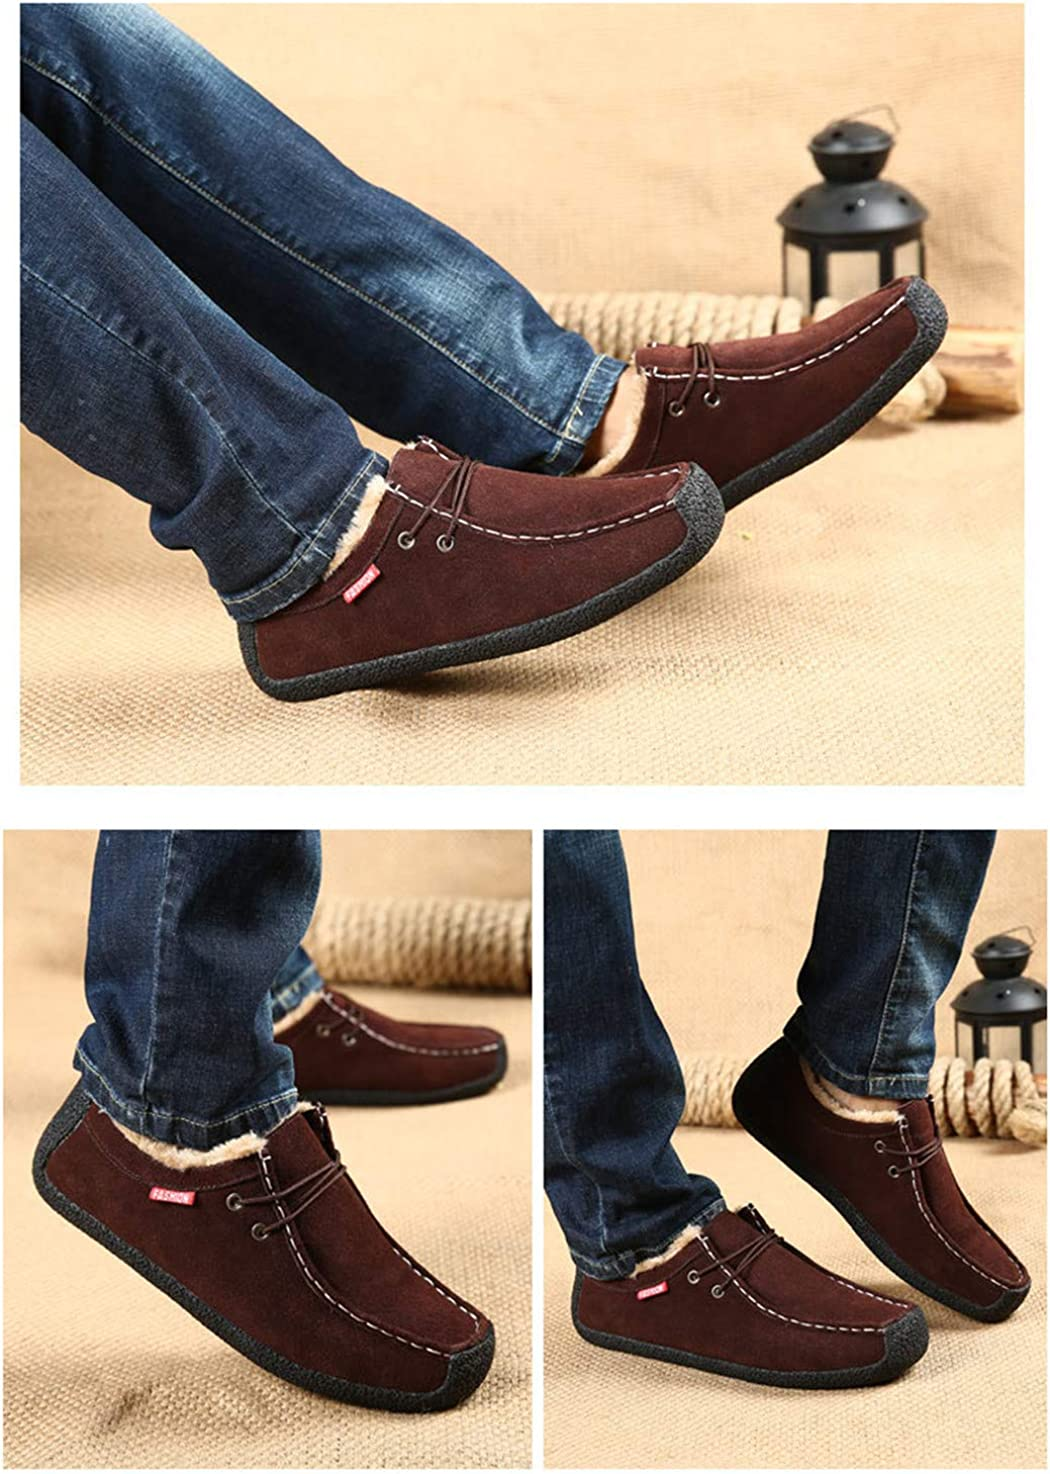 SusanY Mens Suede Loafers Comfortable Casual Shoes Boat Shoes Moccasins Walking Shoes Brown 14.5 M US